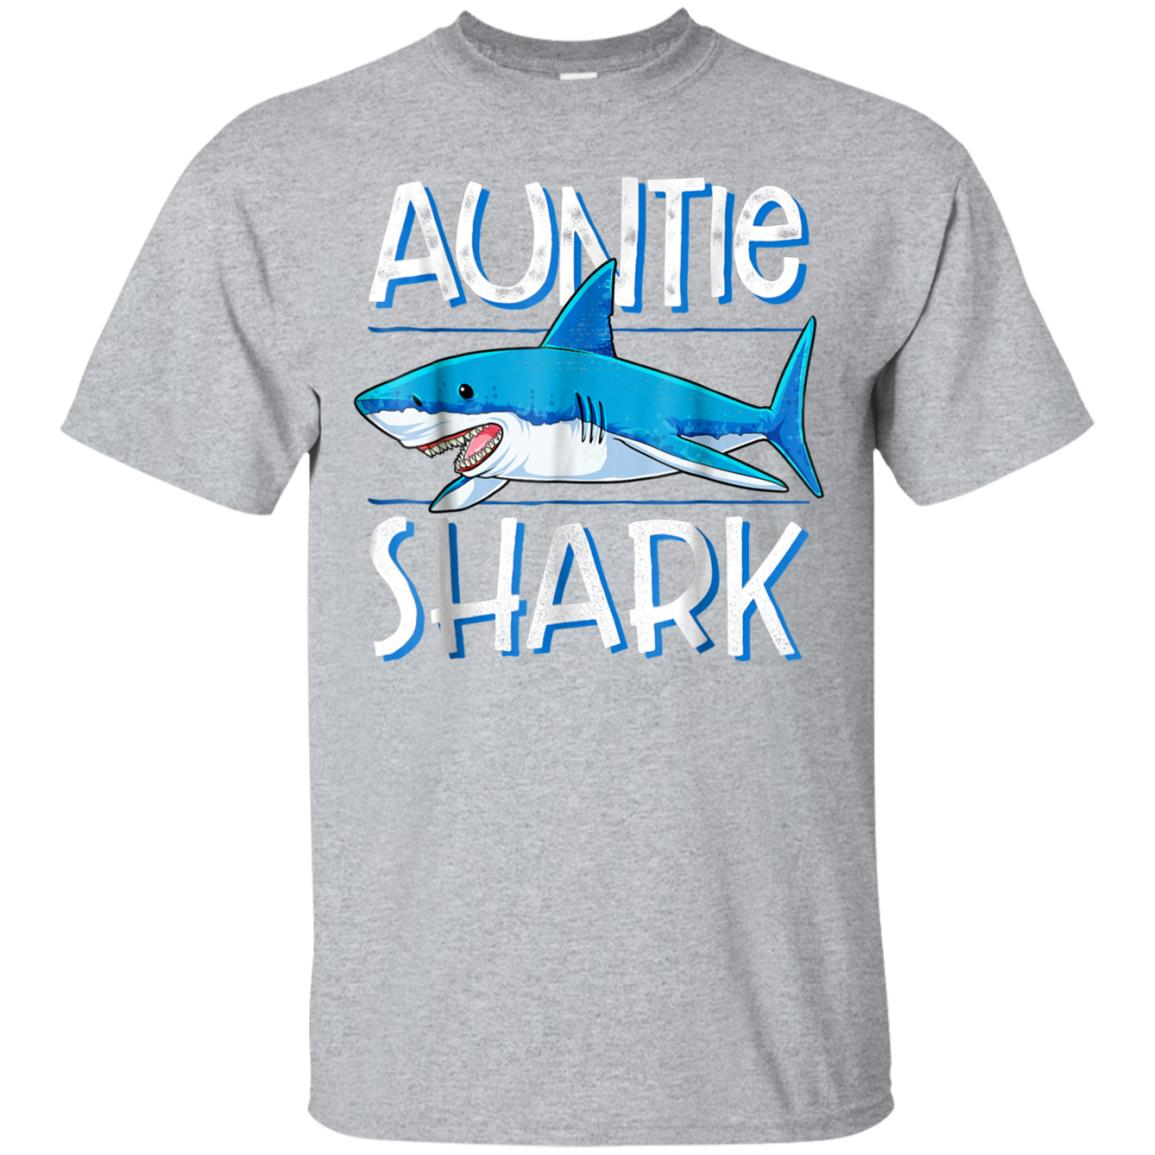 Auntie Shark T Shirt Family Matching Aunt Women Jawsome Gift 99promocode